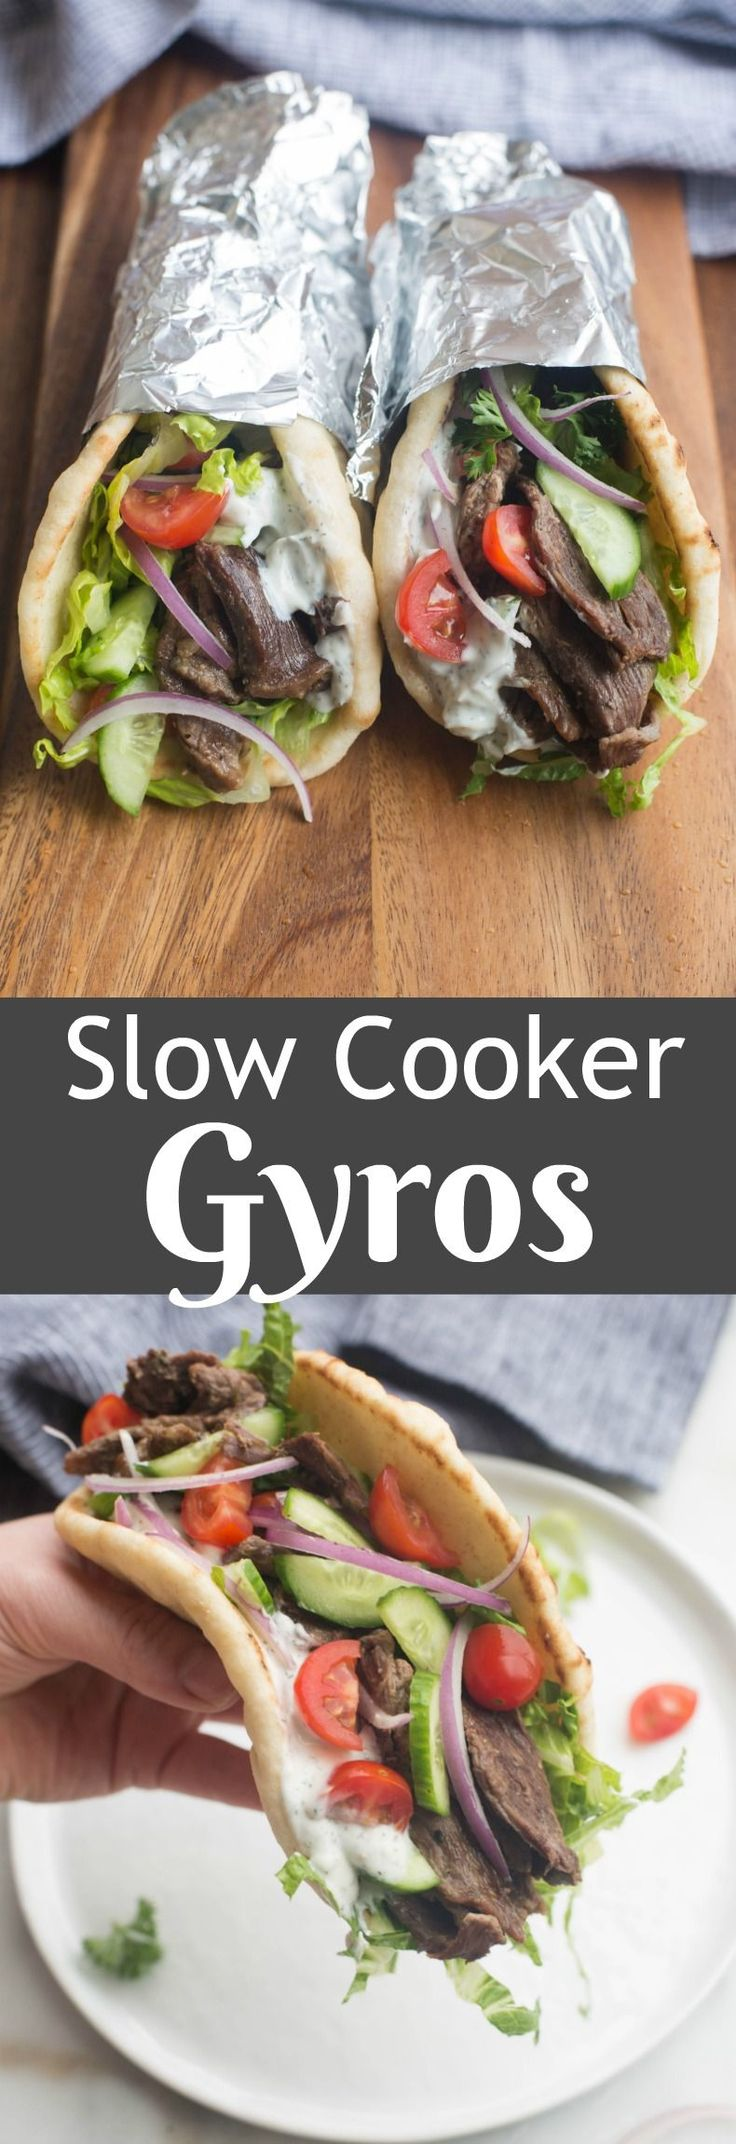 Deliciously flavorful and tender Beef Gyros, made in the slow cooker or instant pot pressure cooker. This tasty dish couldn't be easier to make from home!| Tastes Better From Scratch